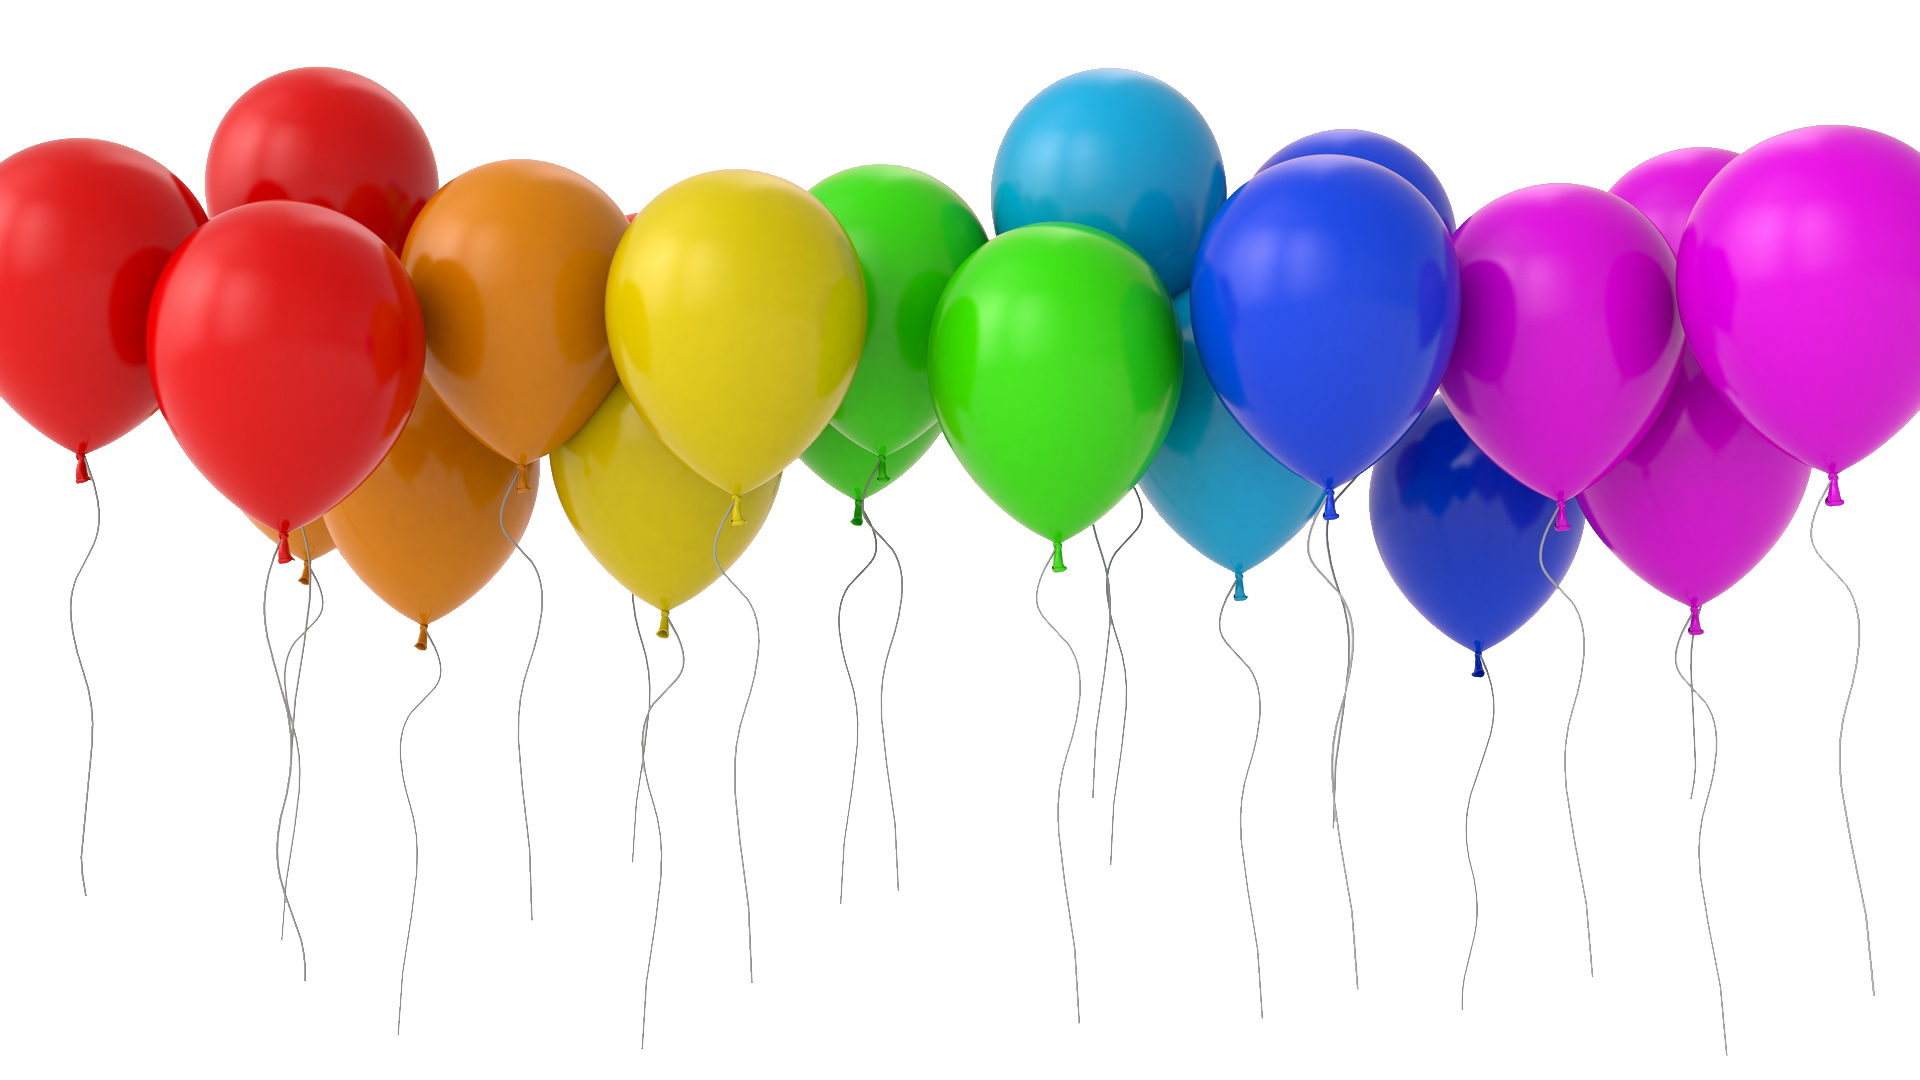 Download Balloons PNG Images Transparent Backgrounds Pictures below. - Ballons PNG